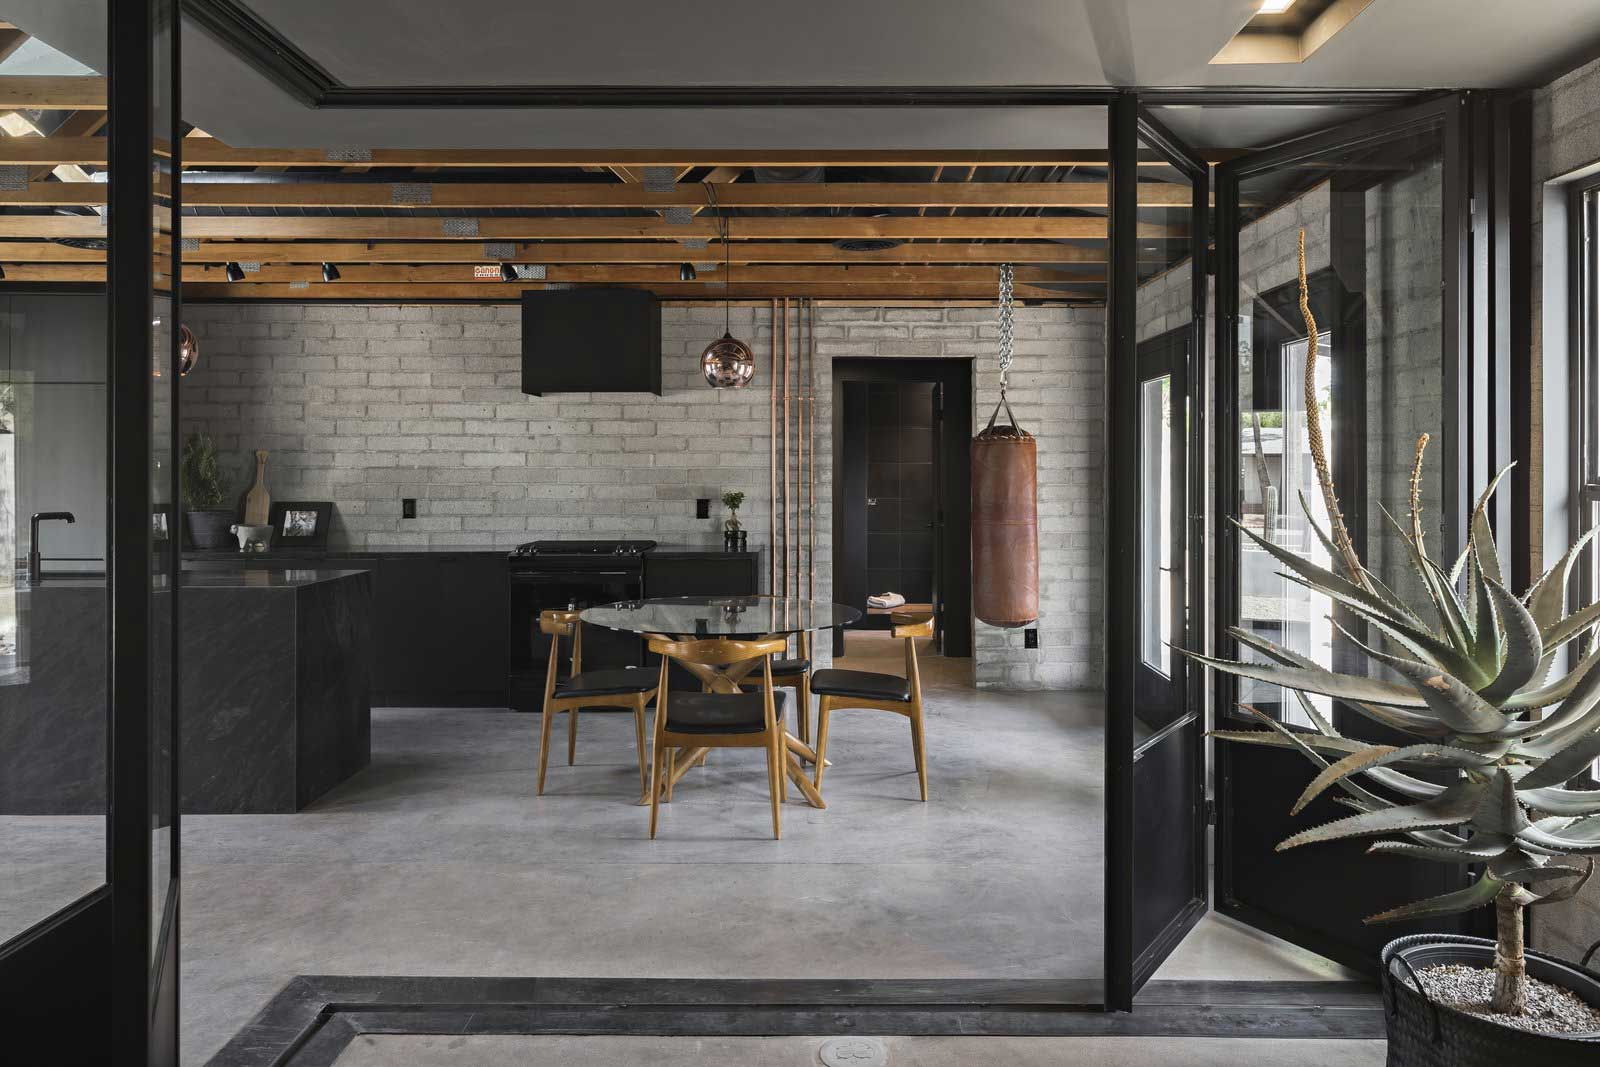 Traum-Loft: The Black House The-Black-House-Airbnb_04